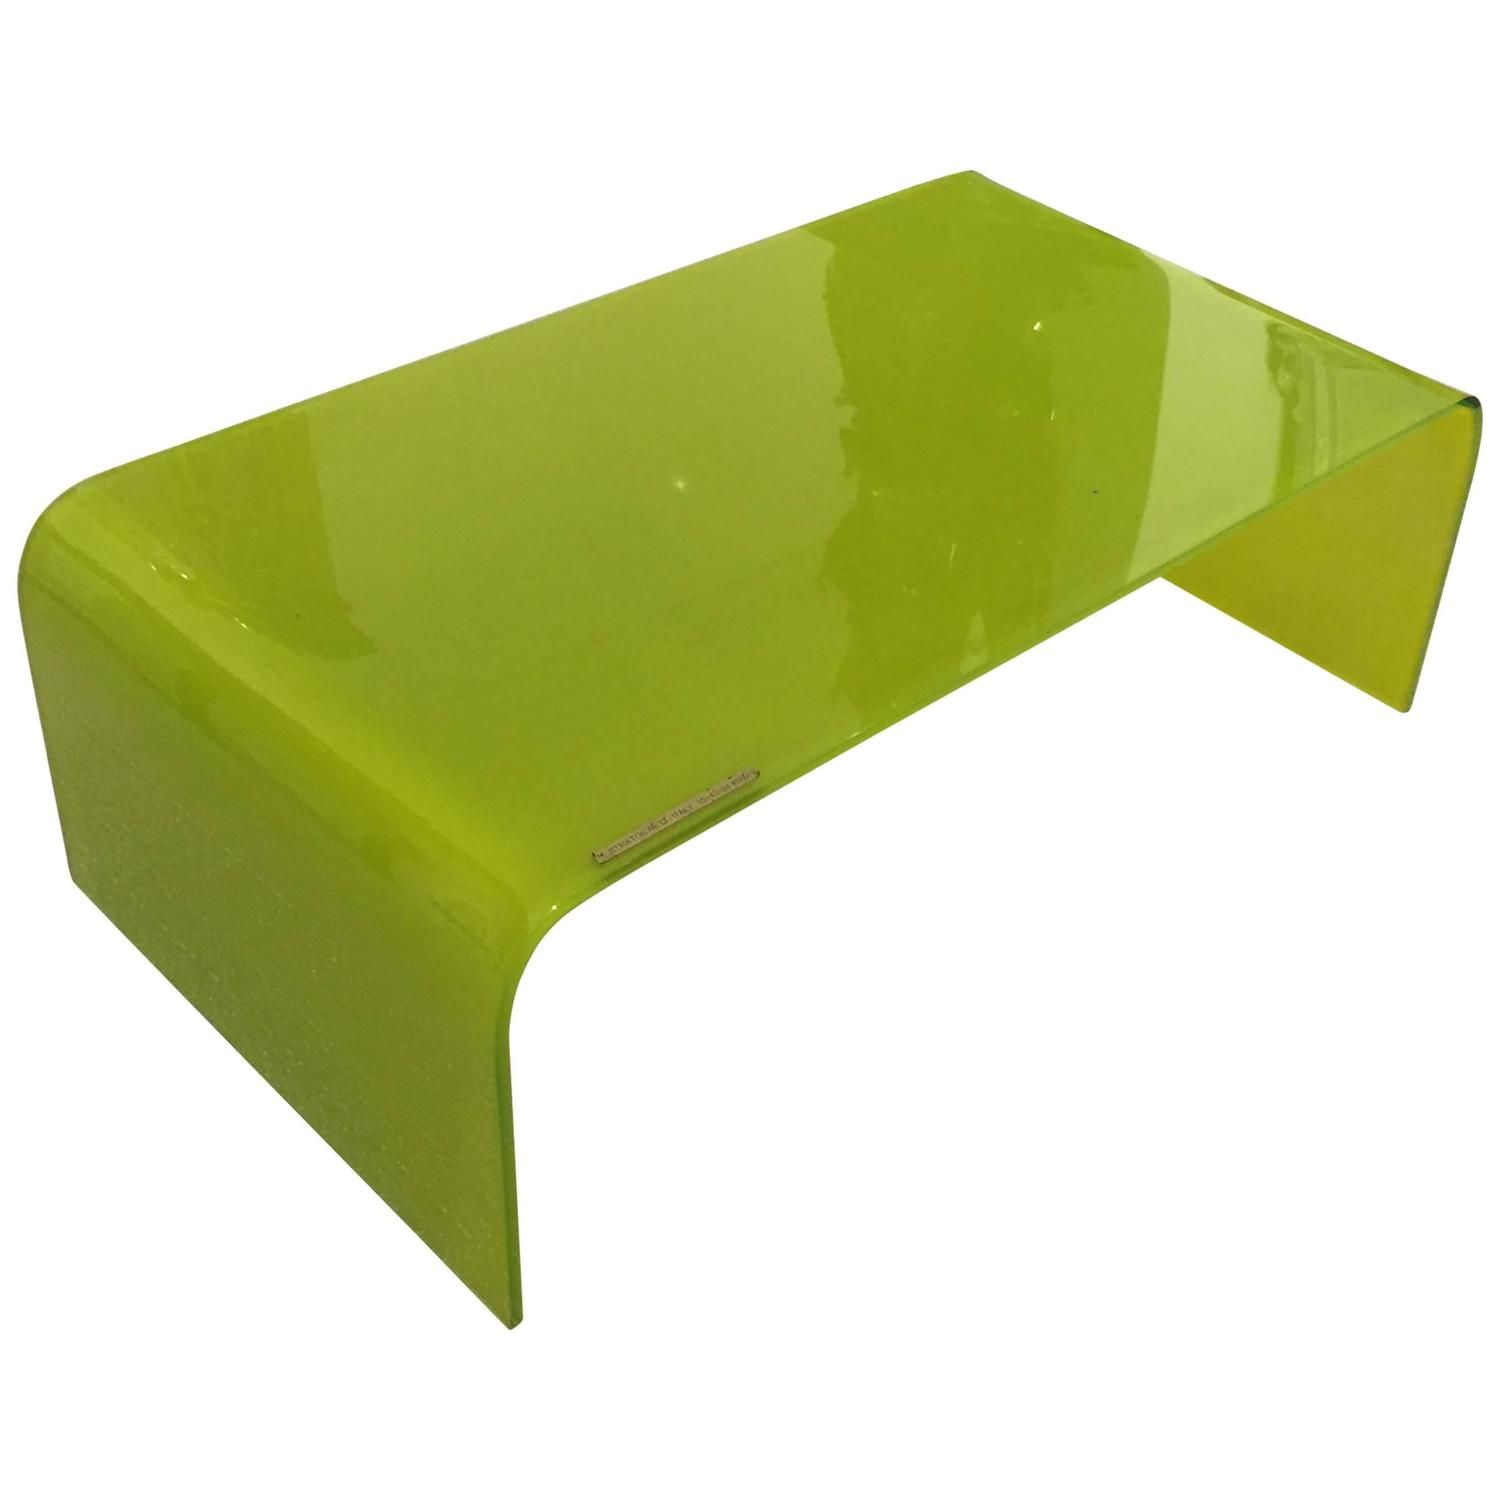 Italian Green Glass Waterfall Coffee Table by Stratos Rett Italy